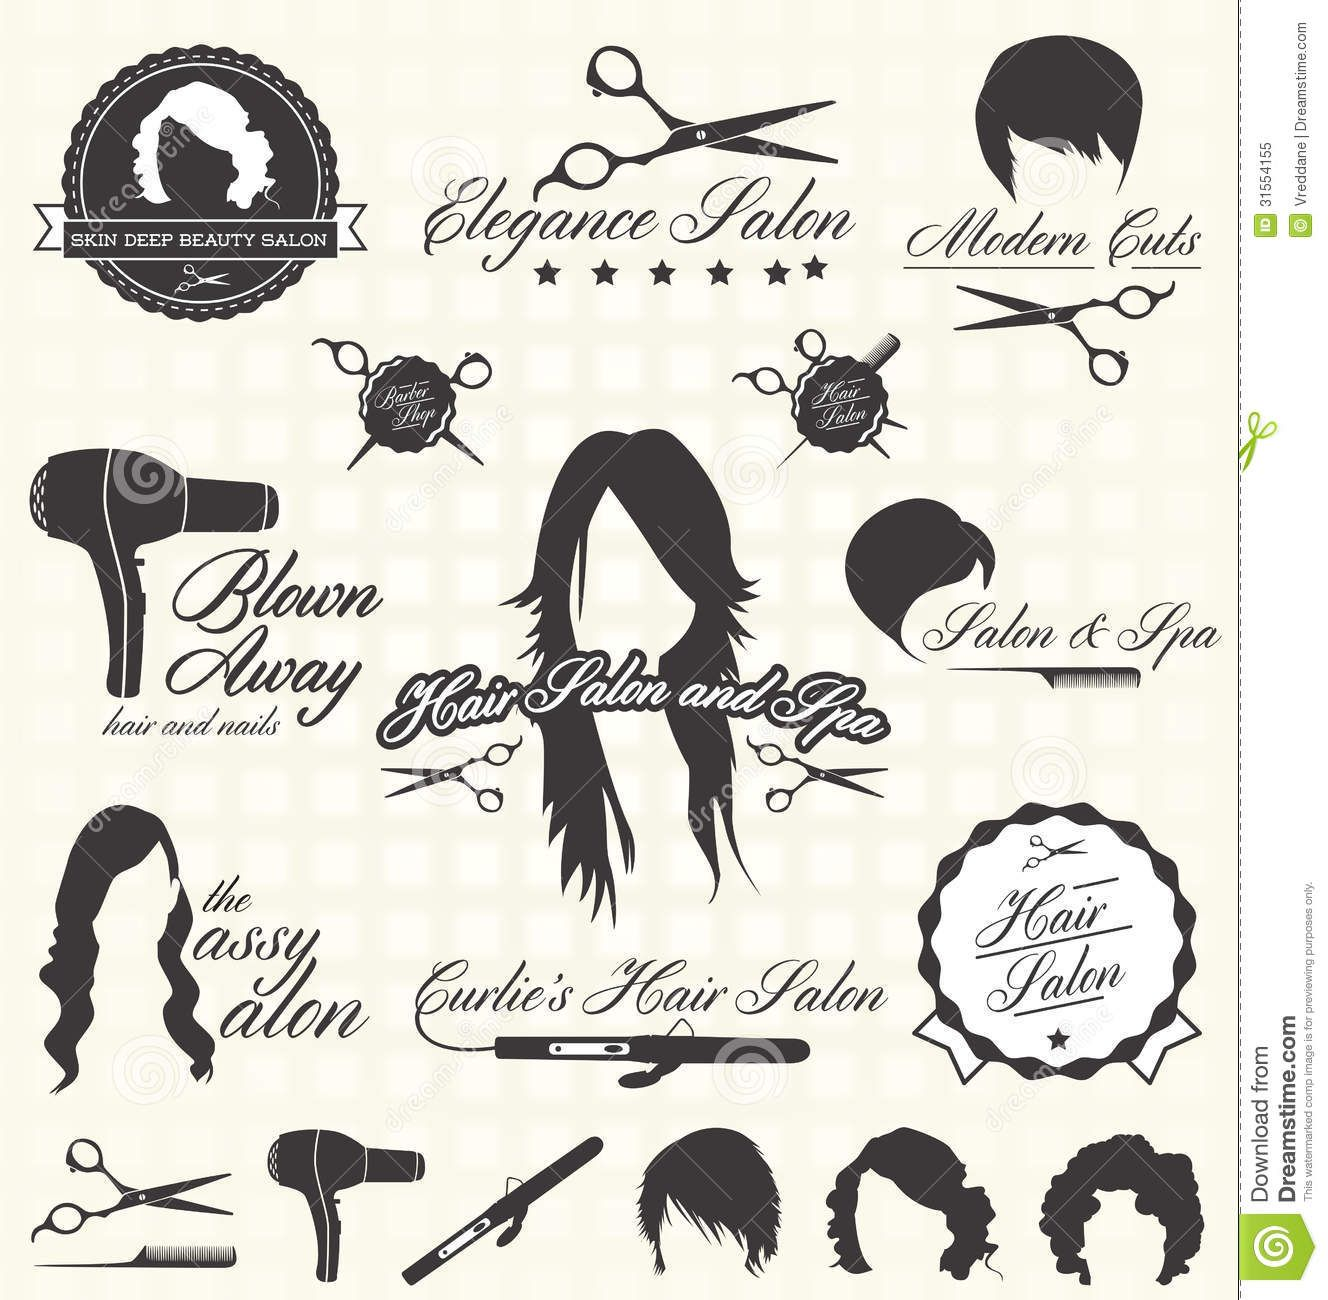 image free library Hairdresser graphics google search. Haircut clipart vintage salon